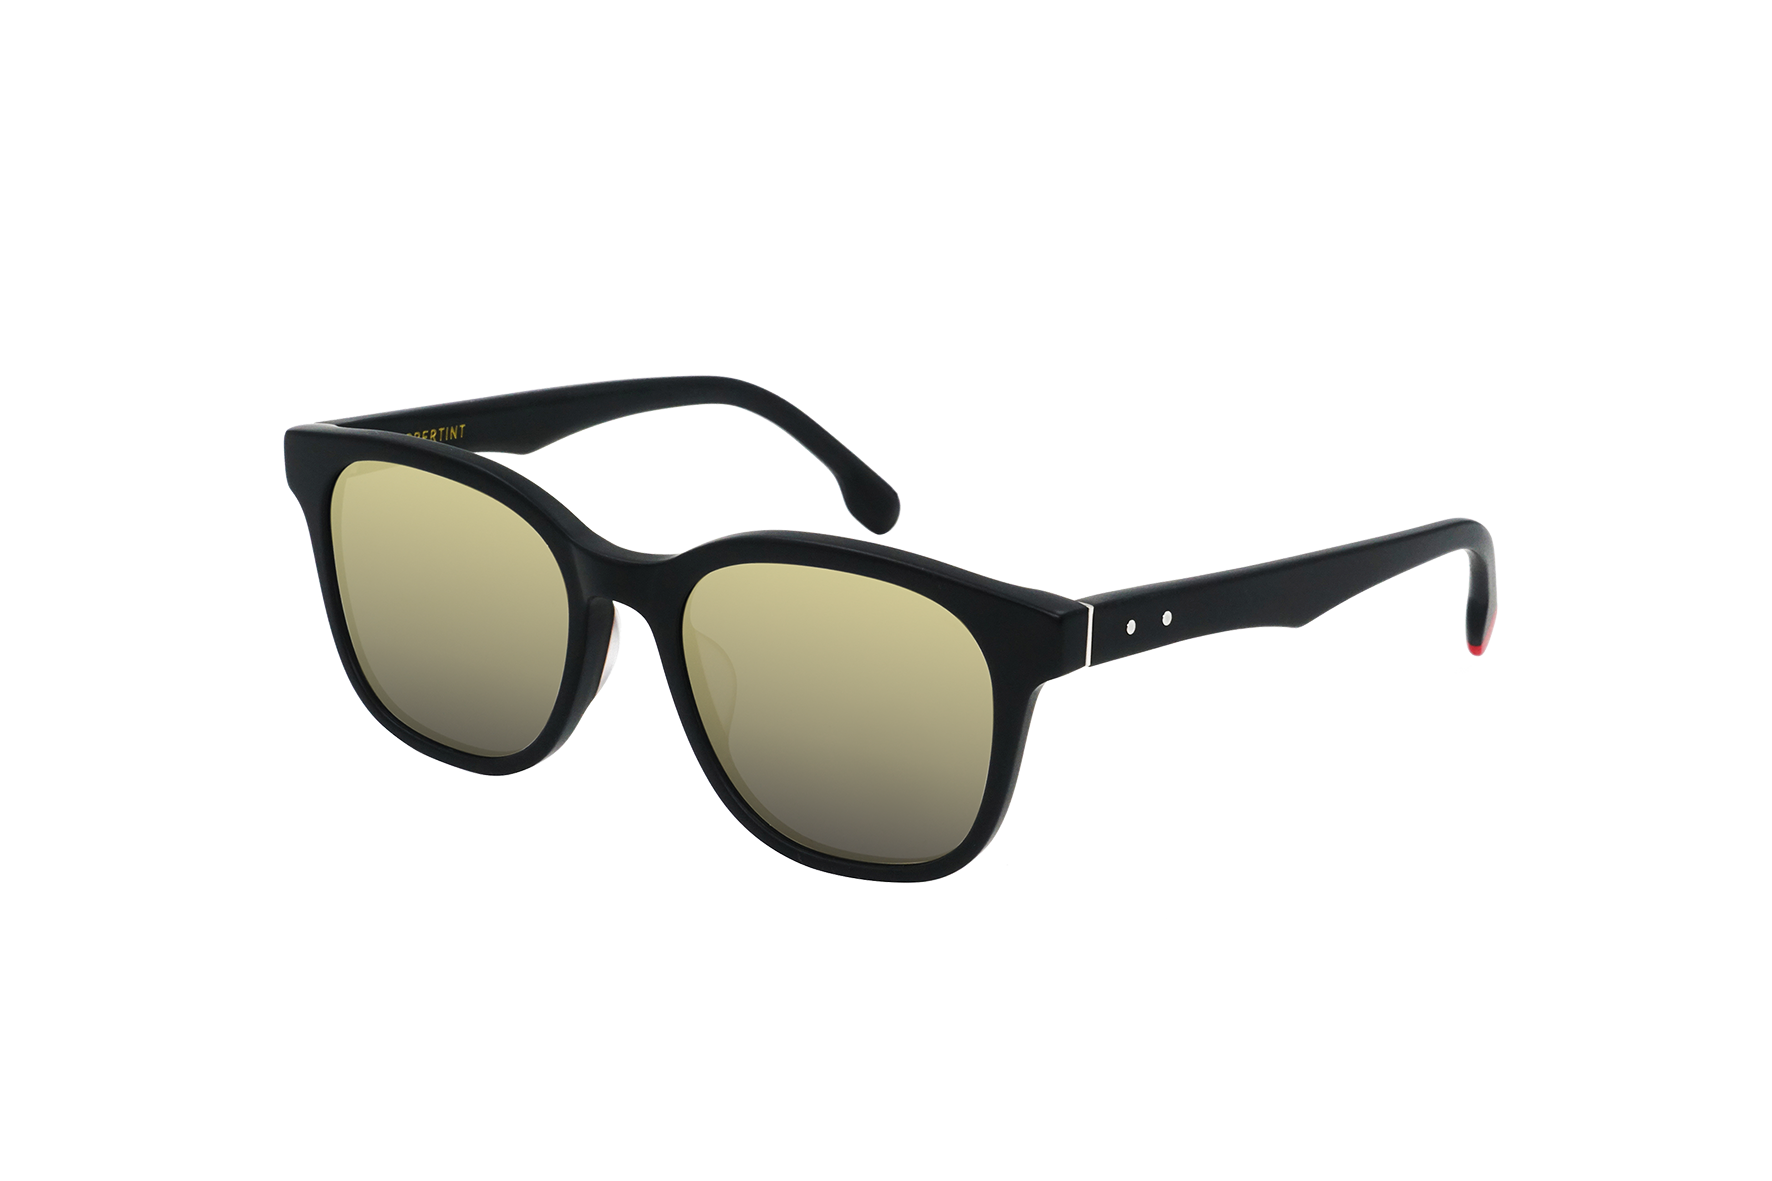 PCH in Champagne Mirror - Peppertint - Designer sunglasses